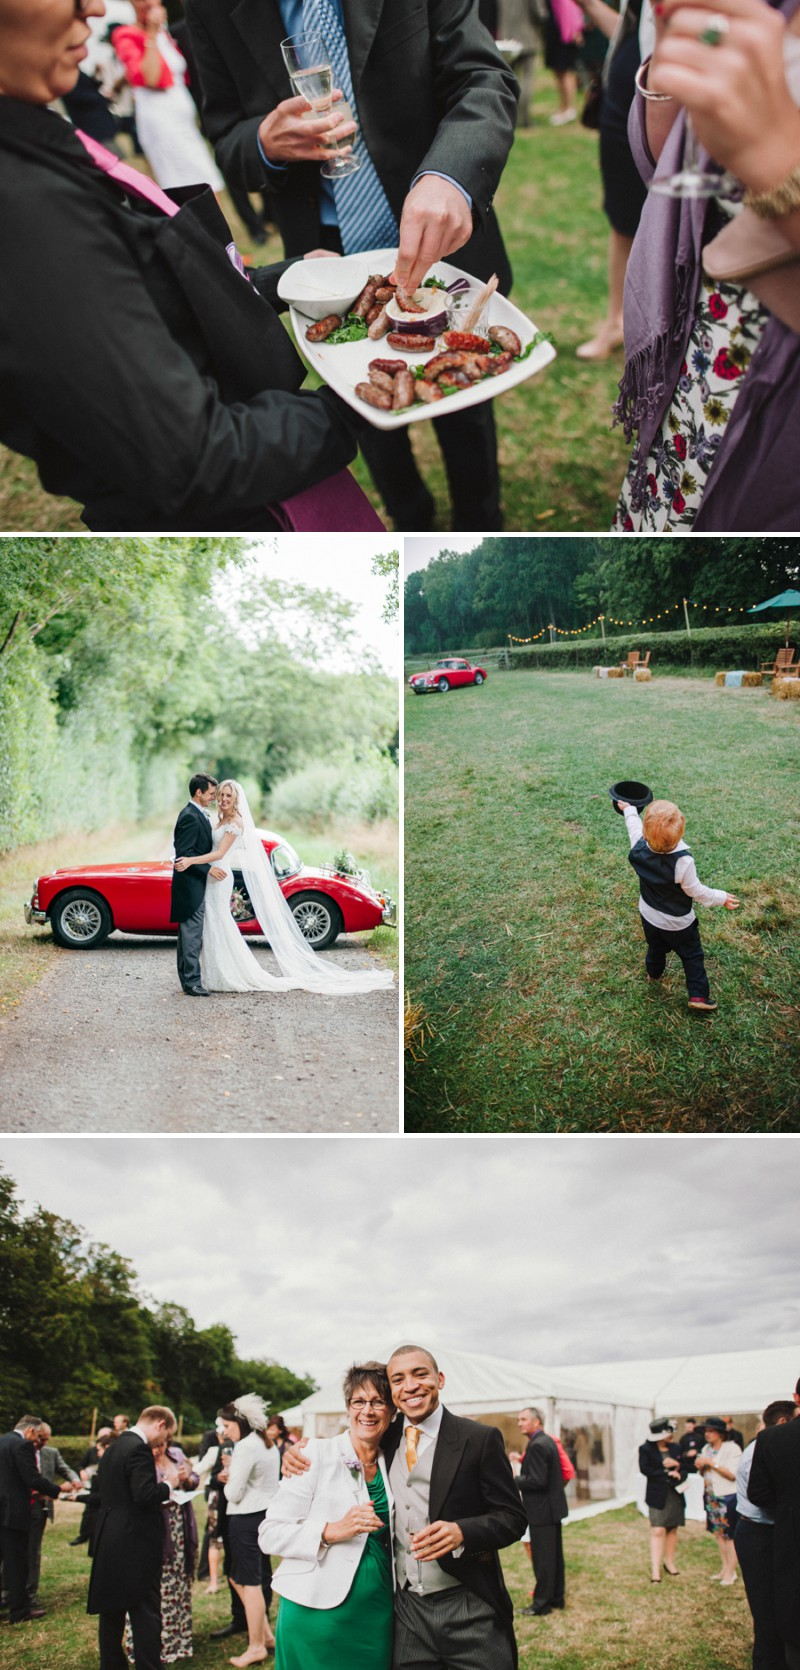 An English Back Garden Wedding With A Romona Keveza Dress And Jimmy Choos And A Pink Rose Bouquet With Mint Bridesmaid Dresses By KRAAN Wedding Photography._0010